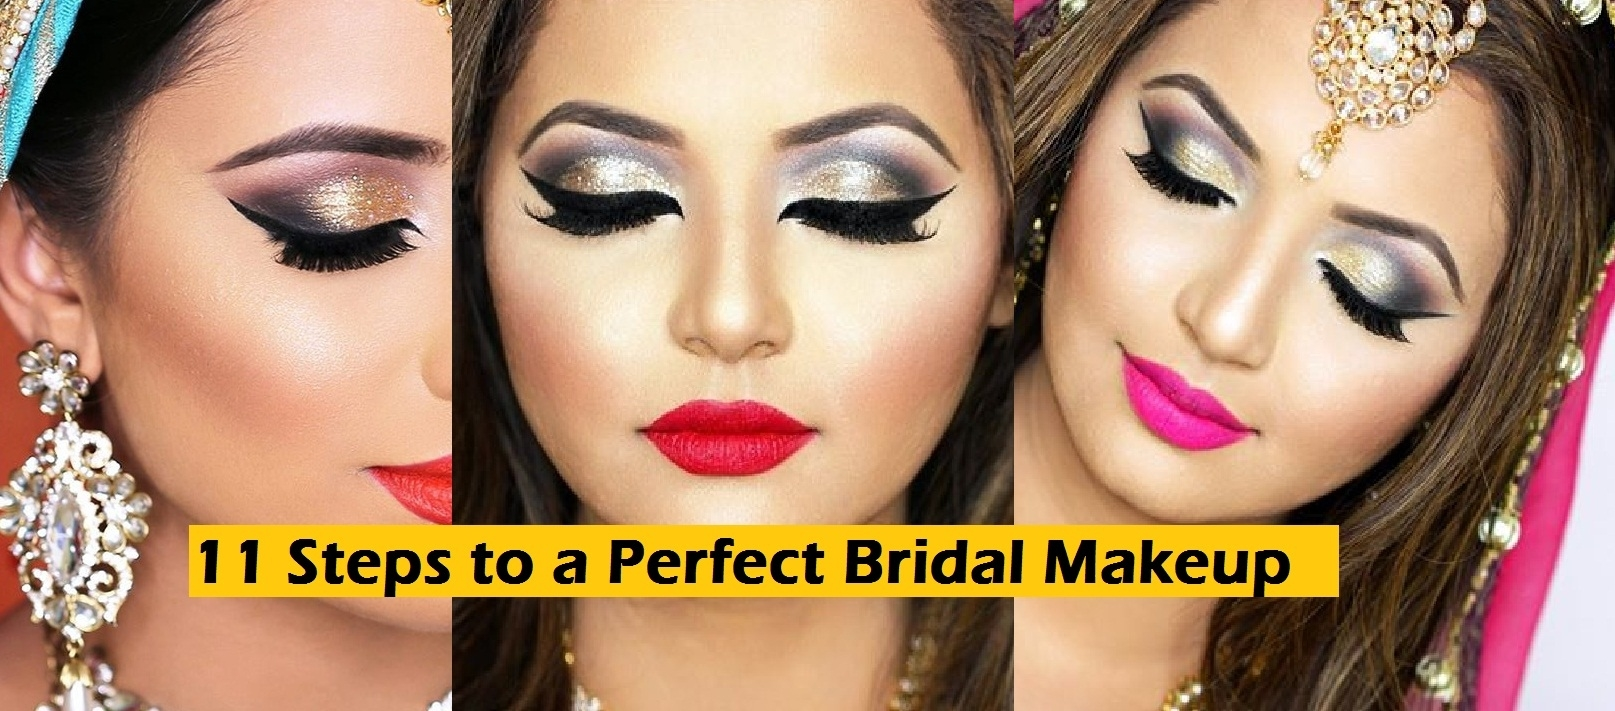 11 Steps To Perfect Bridal Wedding Makeup Tutorial within Bridal Makeup Step By Step Pictures